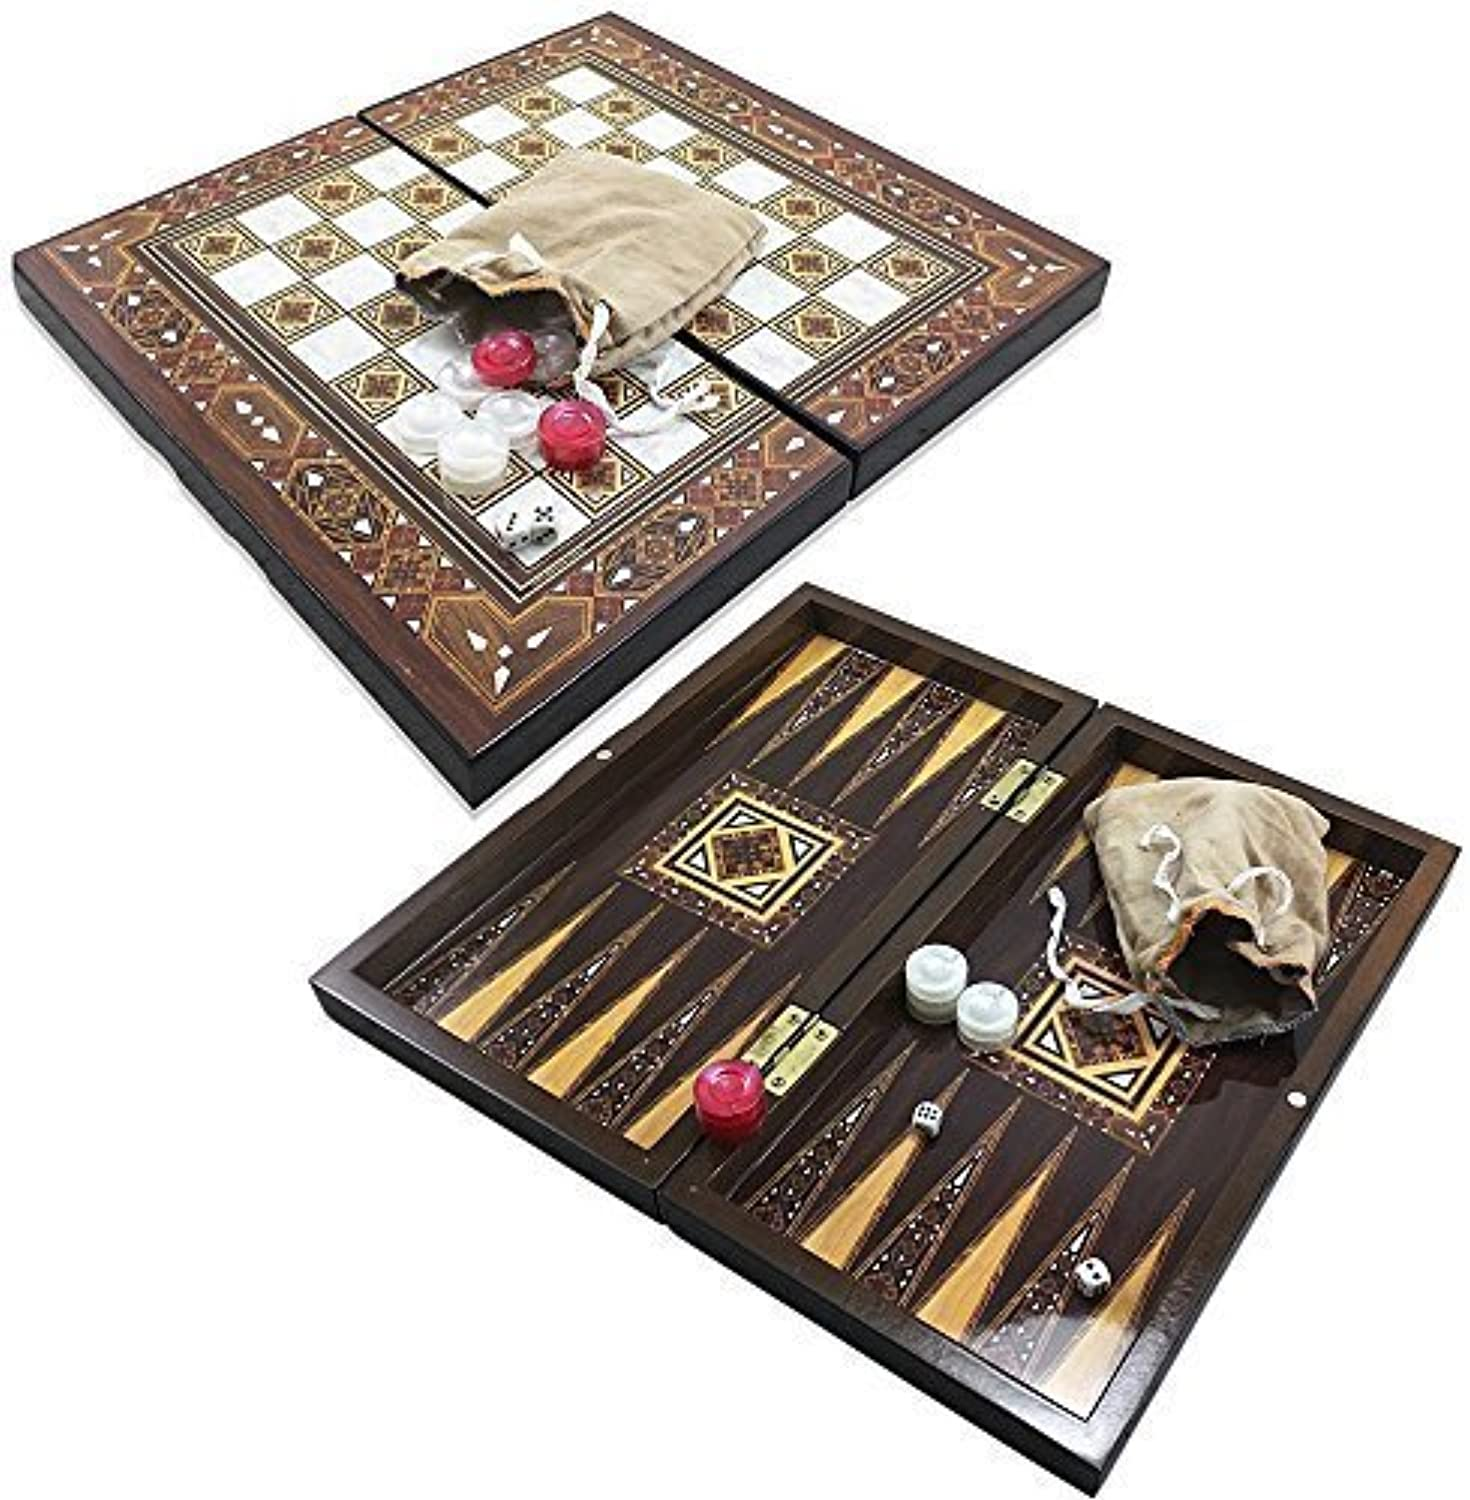 Die 33cm Pyramid Design Backgammon Board Game Set